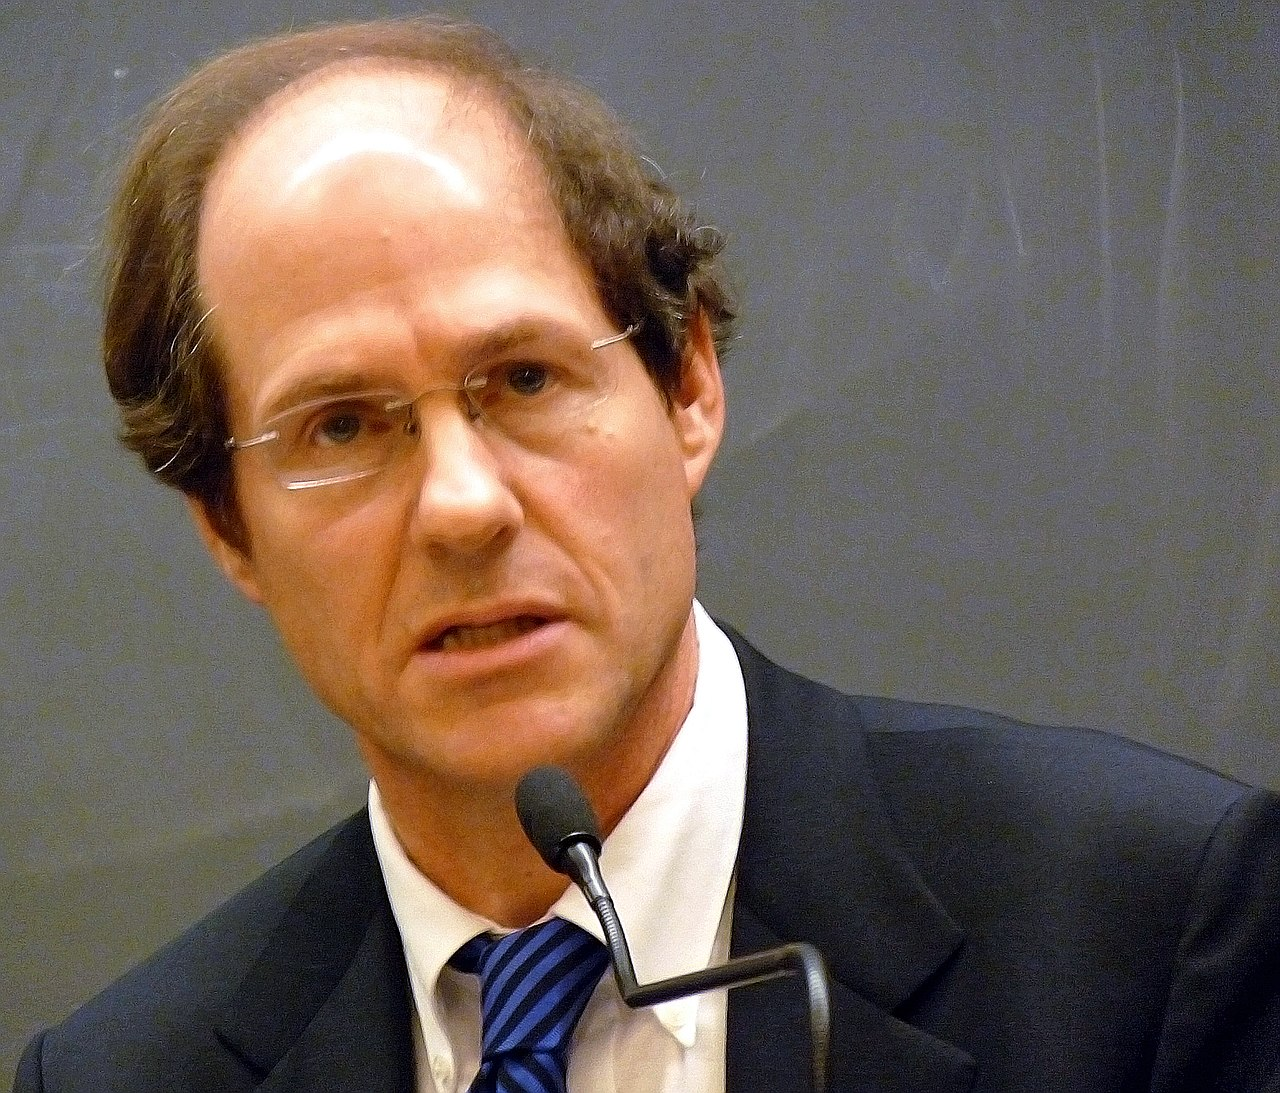 Progressives Vehemently Object To Cass Sunstein's Plans To Return To Government